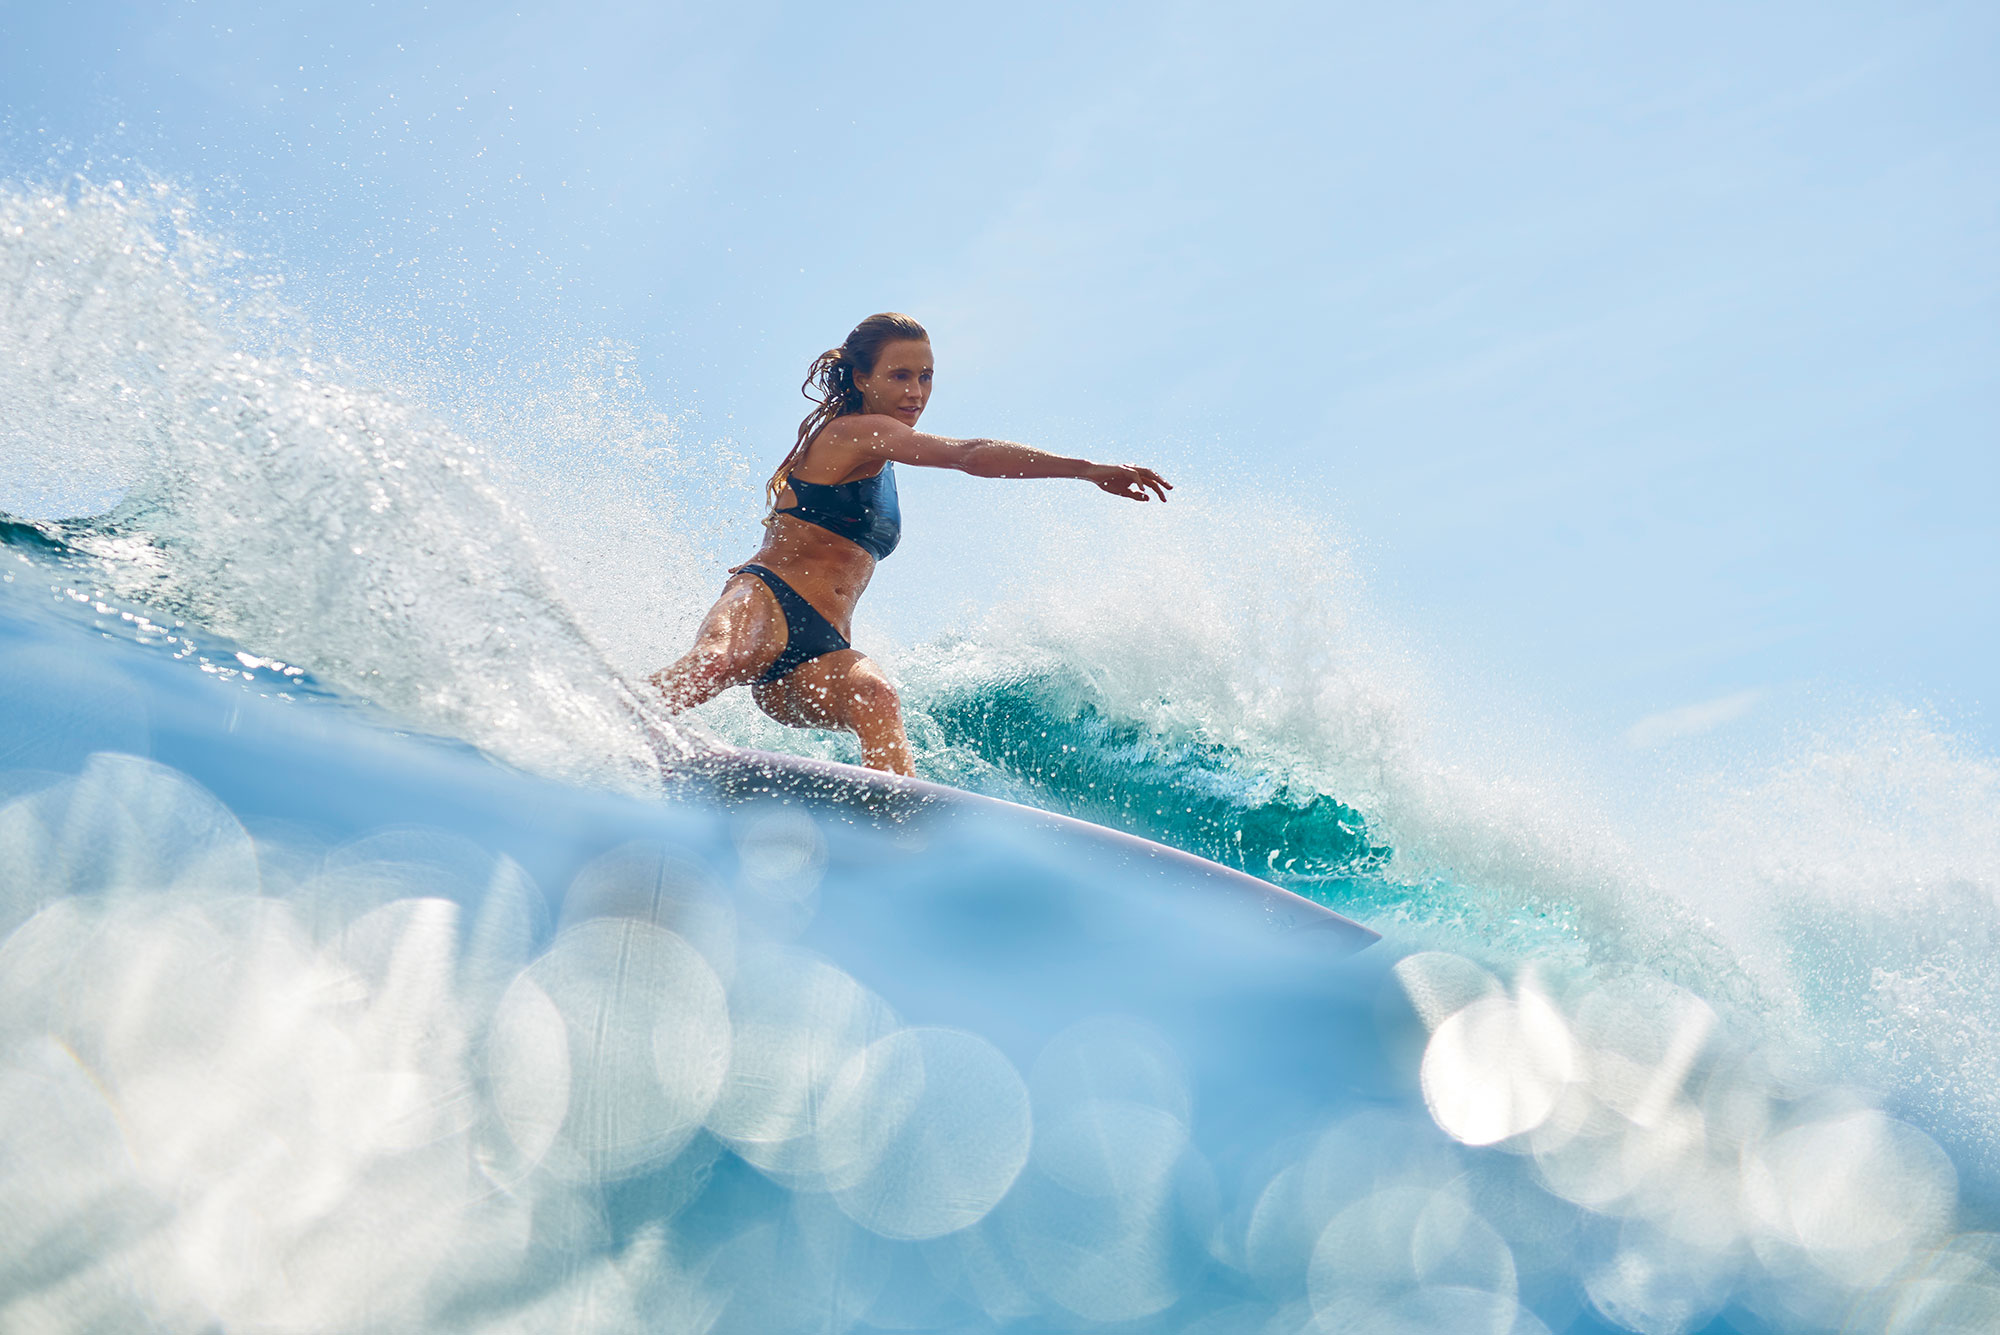 Instagram star, vlogging sensation and radical mother Alana Blanchard.